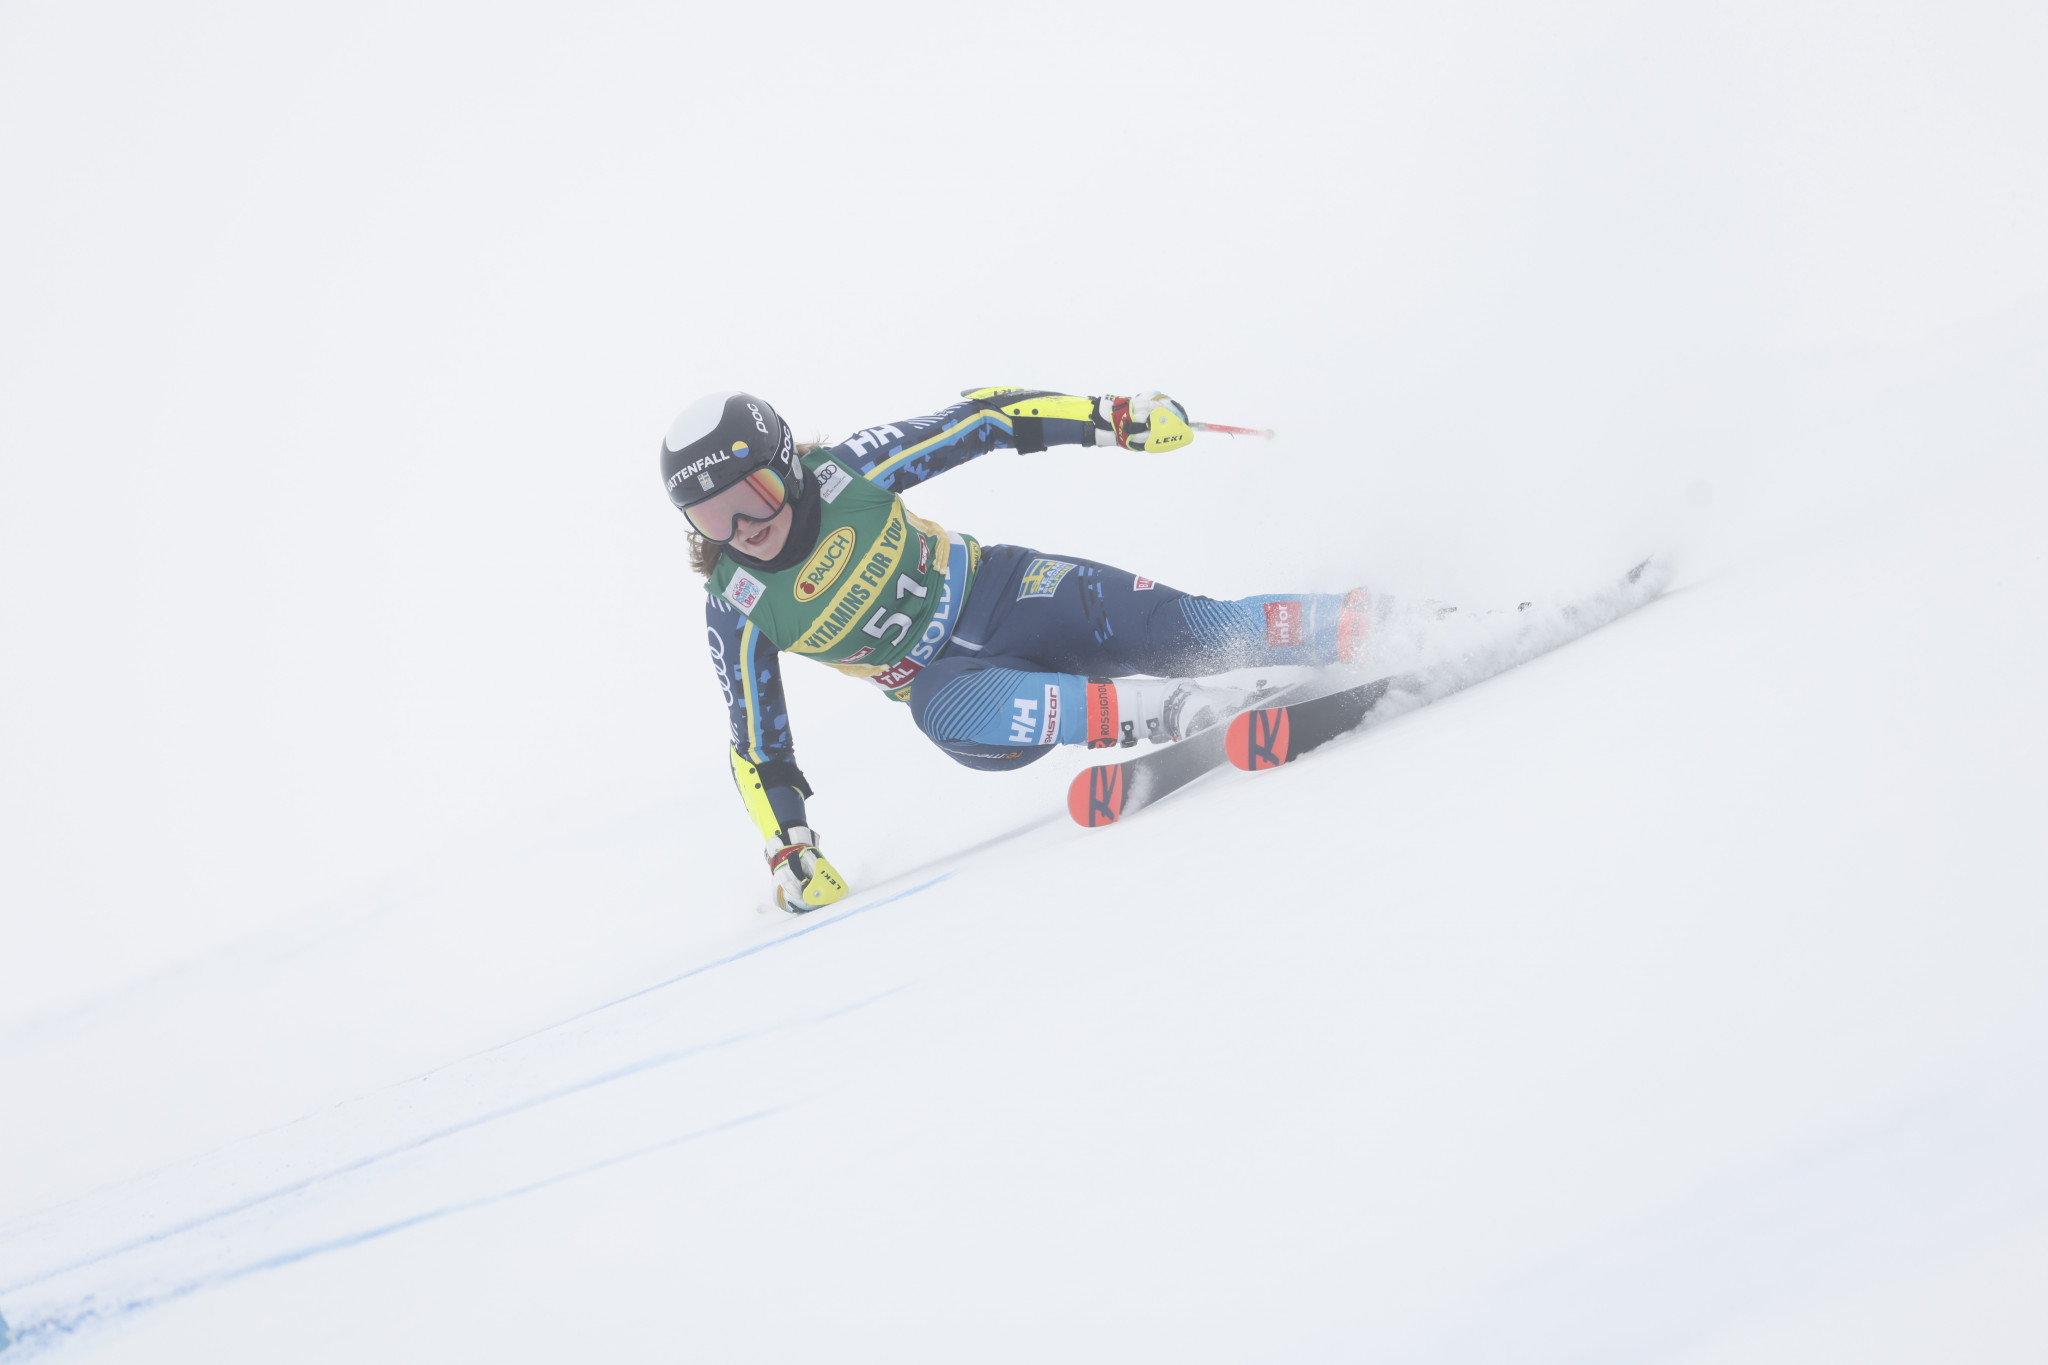 Elfman gets over the hump and wins giant slalom at Alpine Junior World Ski Championships